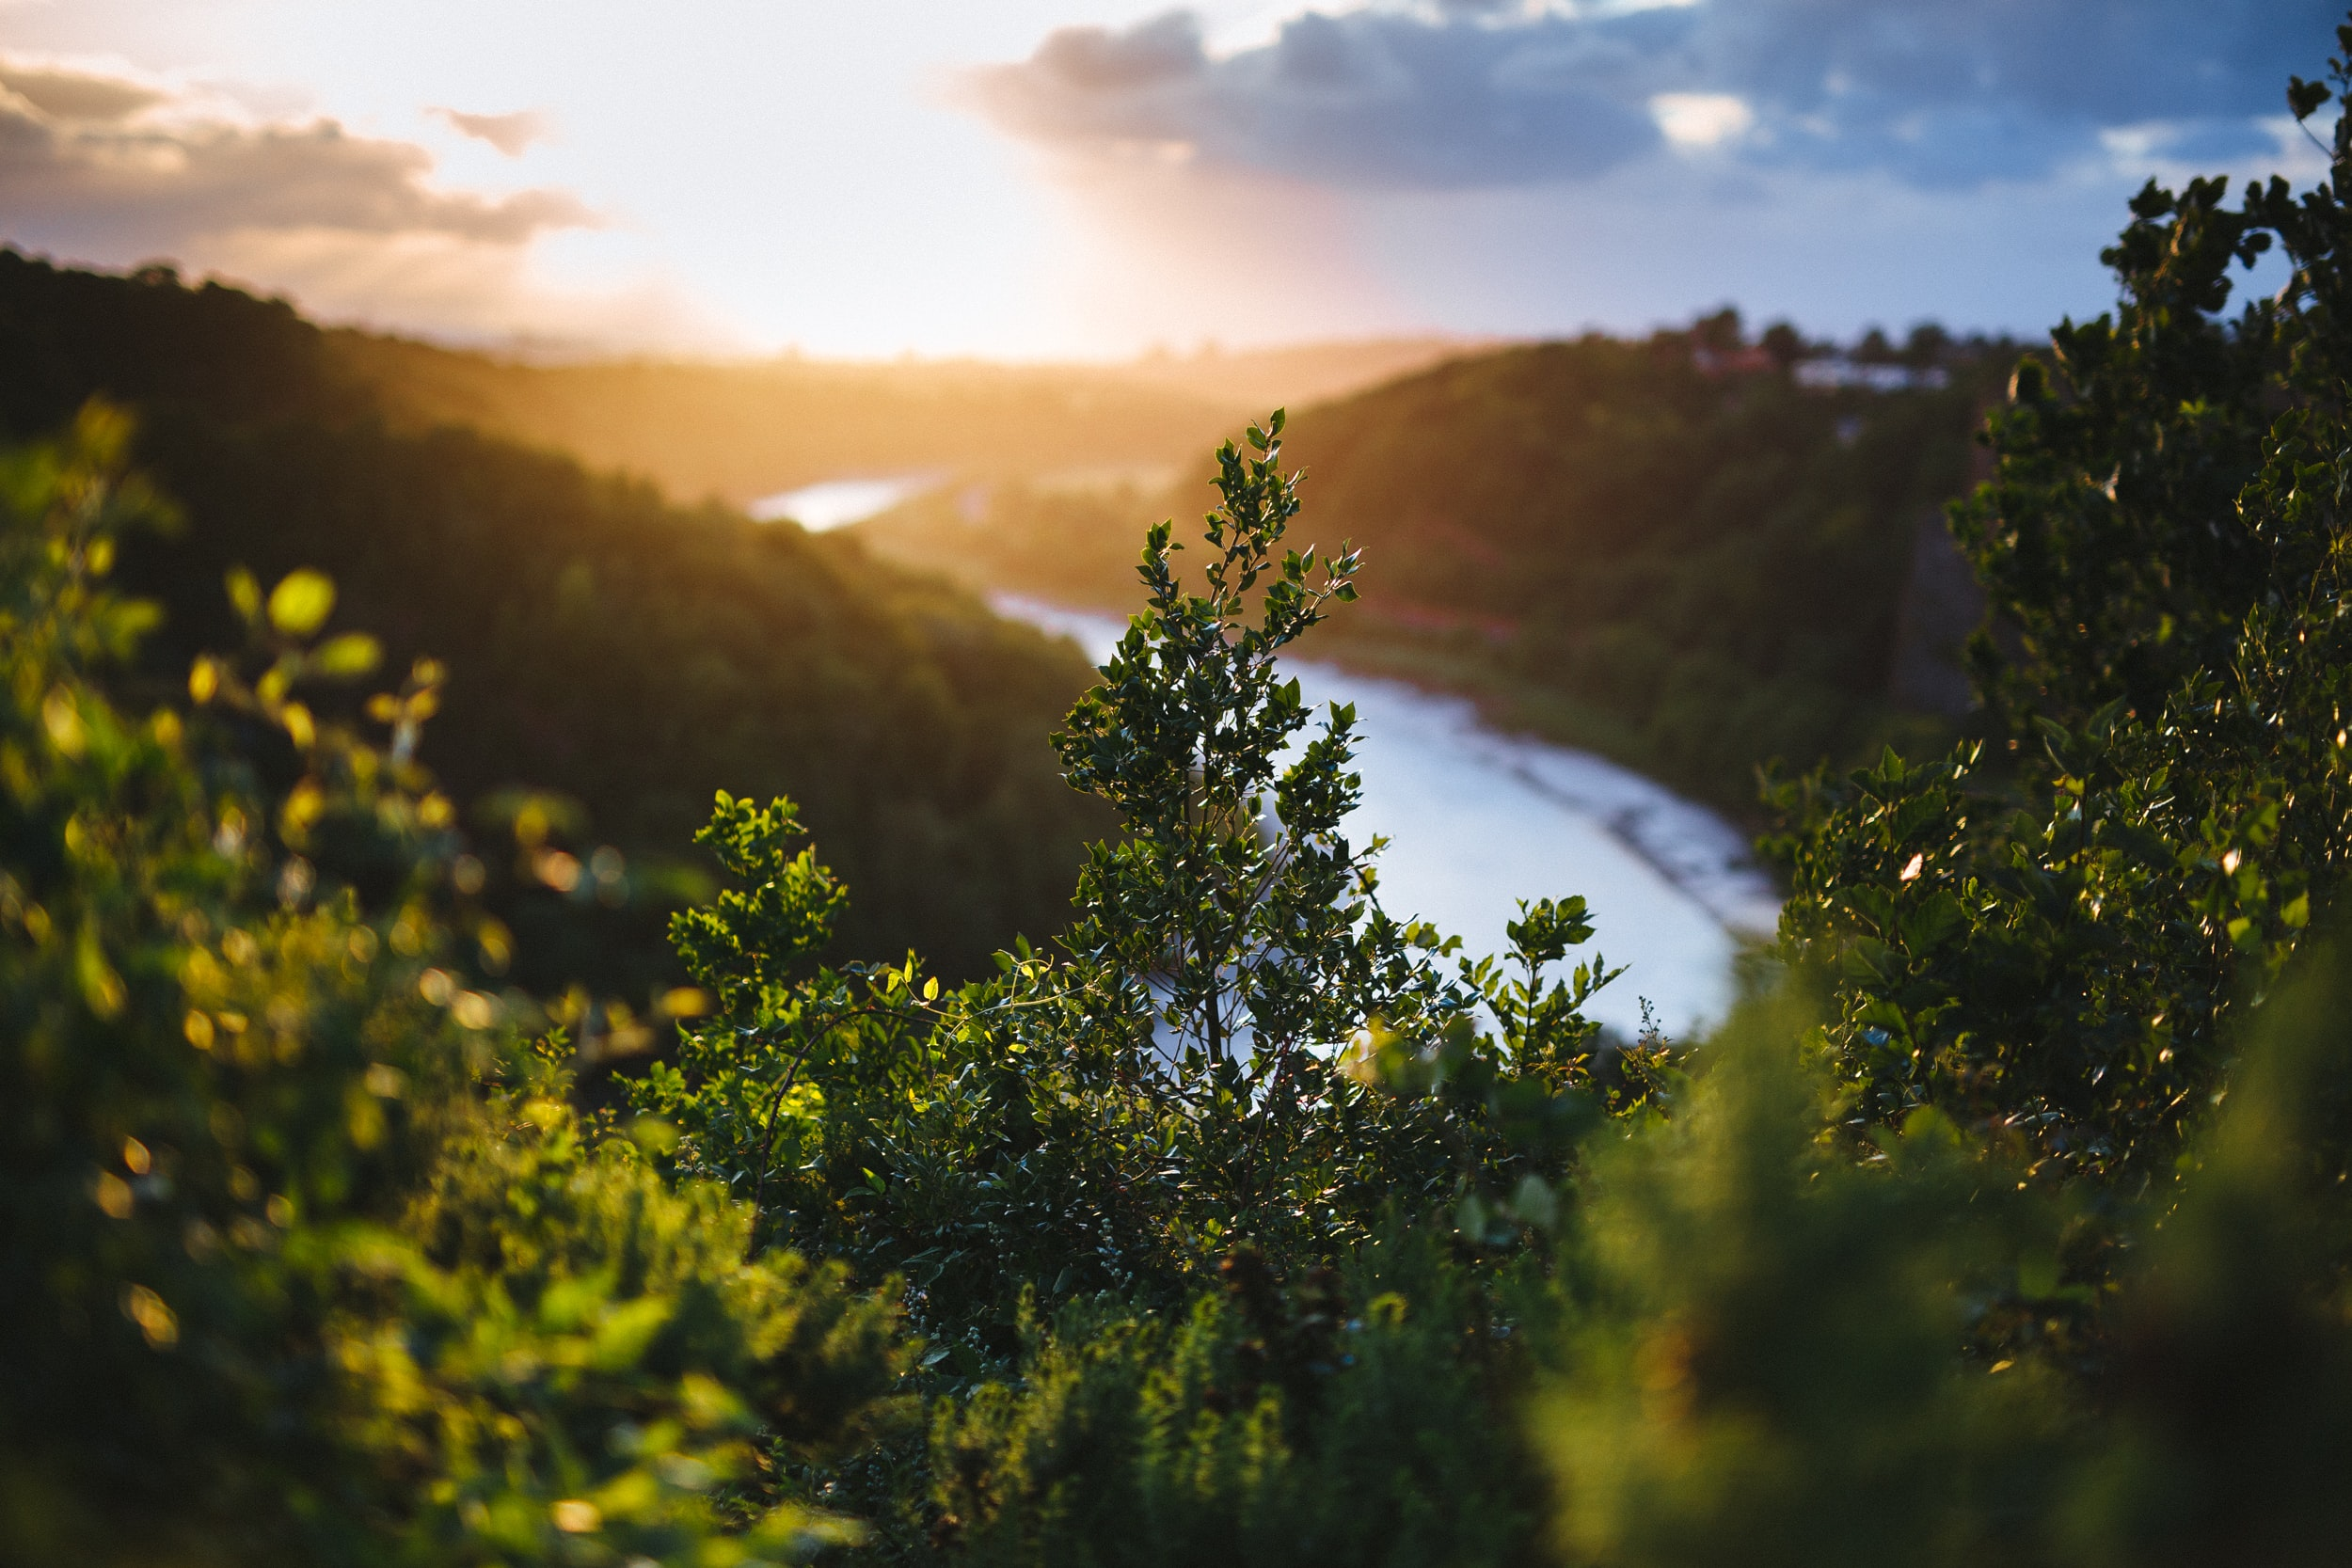 A sunset over a river and forest with bright green leaves at the Clifton Suspension Bridge